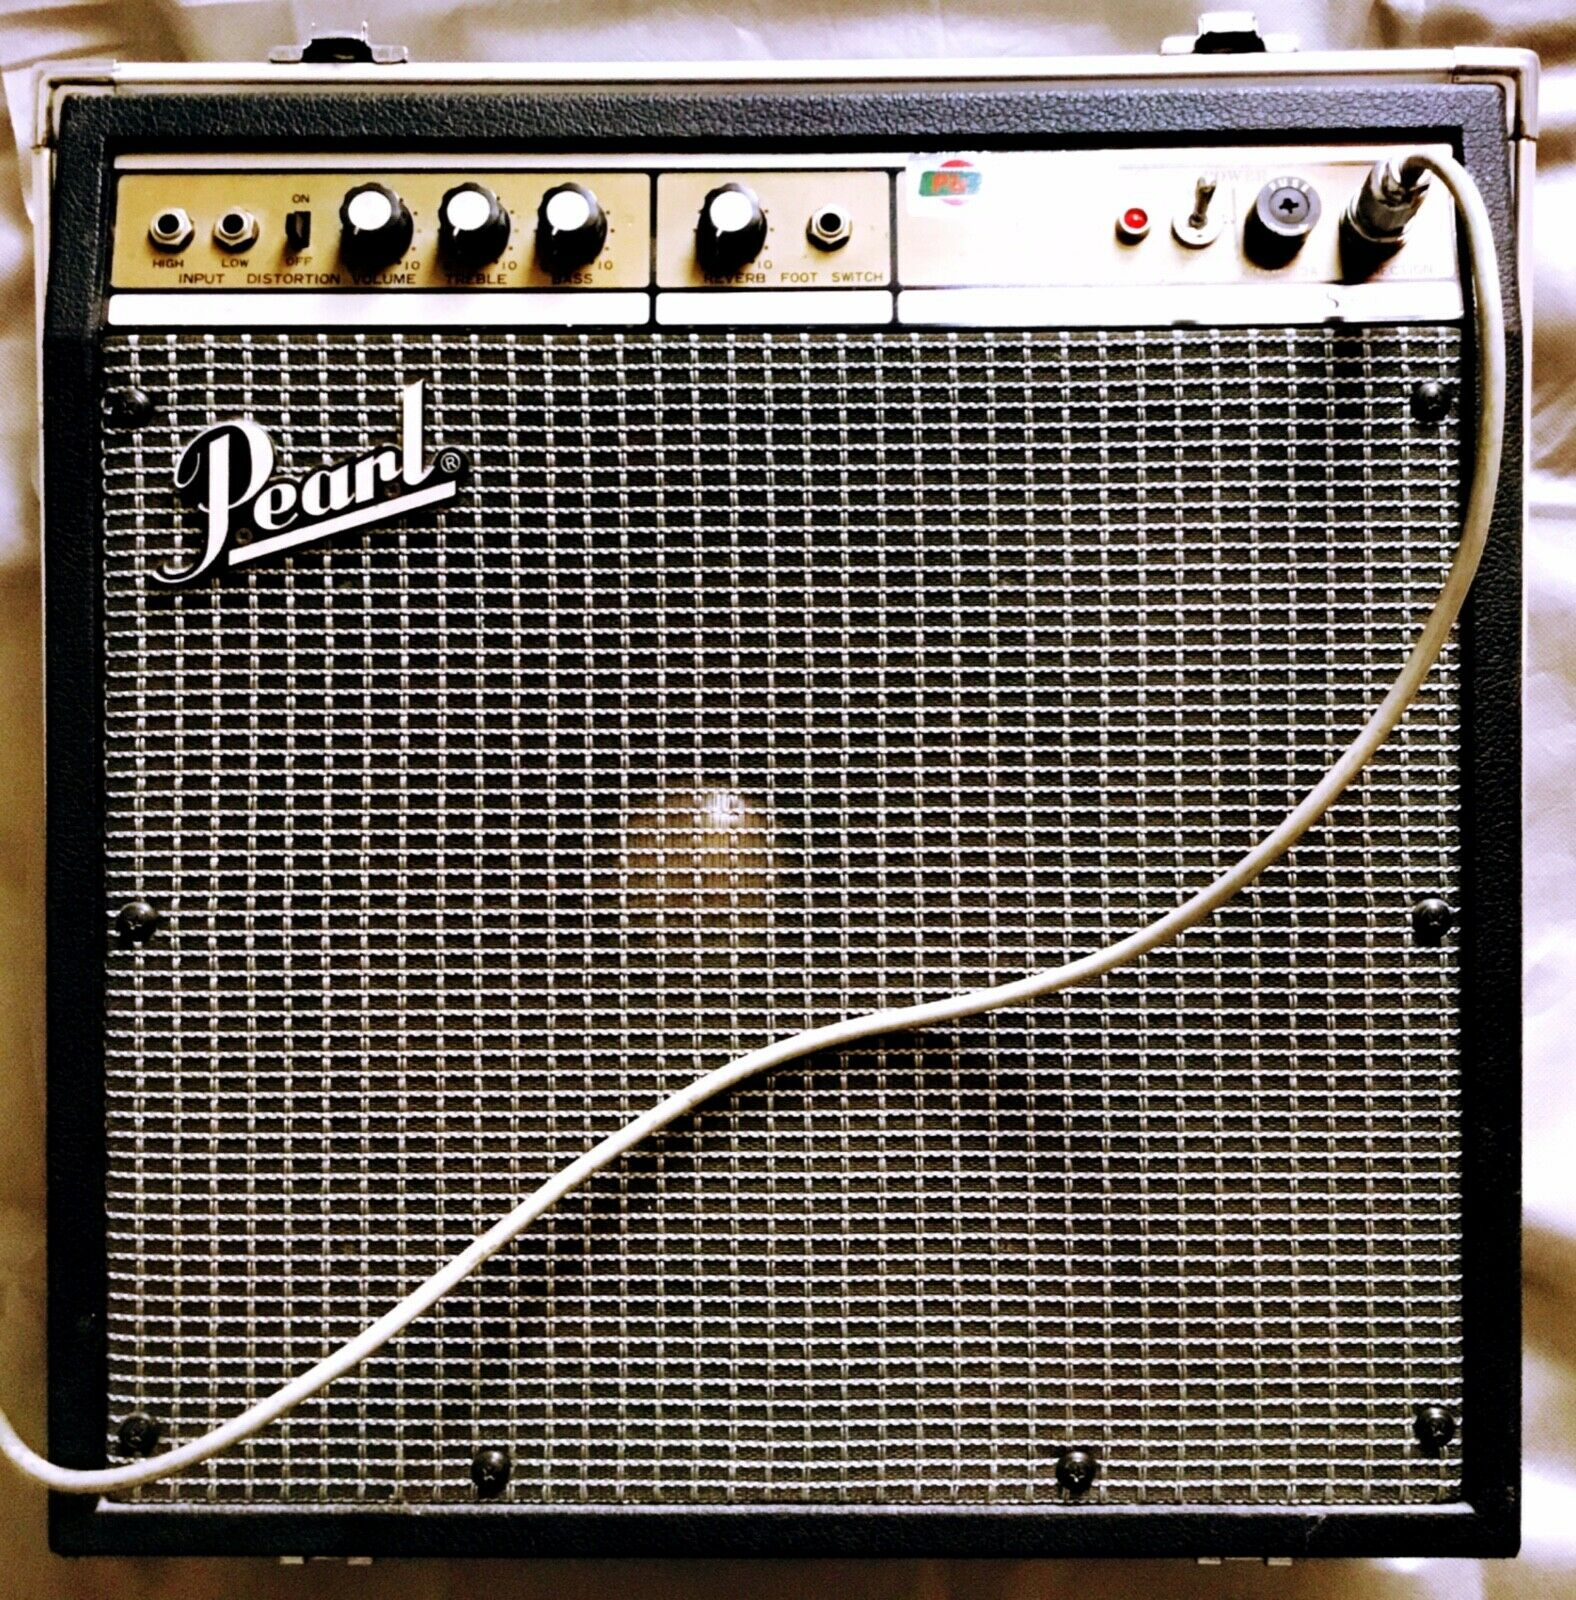 Click image for larger version.  Name:PEARL-Bass-Amp-SS-061.jpg Views:20 Size:606.1 KB ID:55922